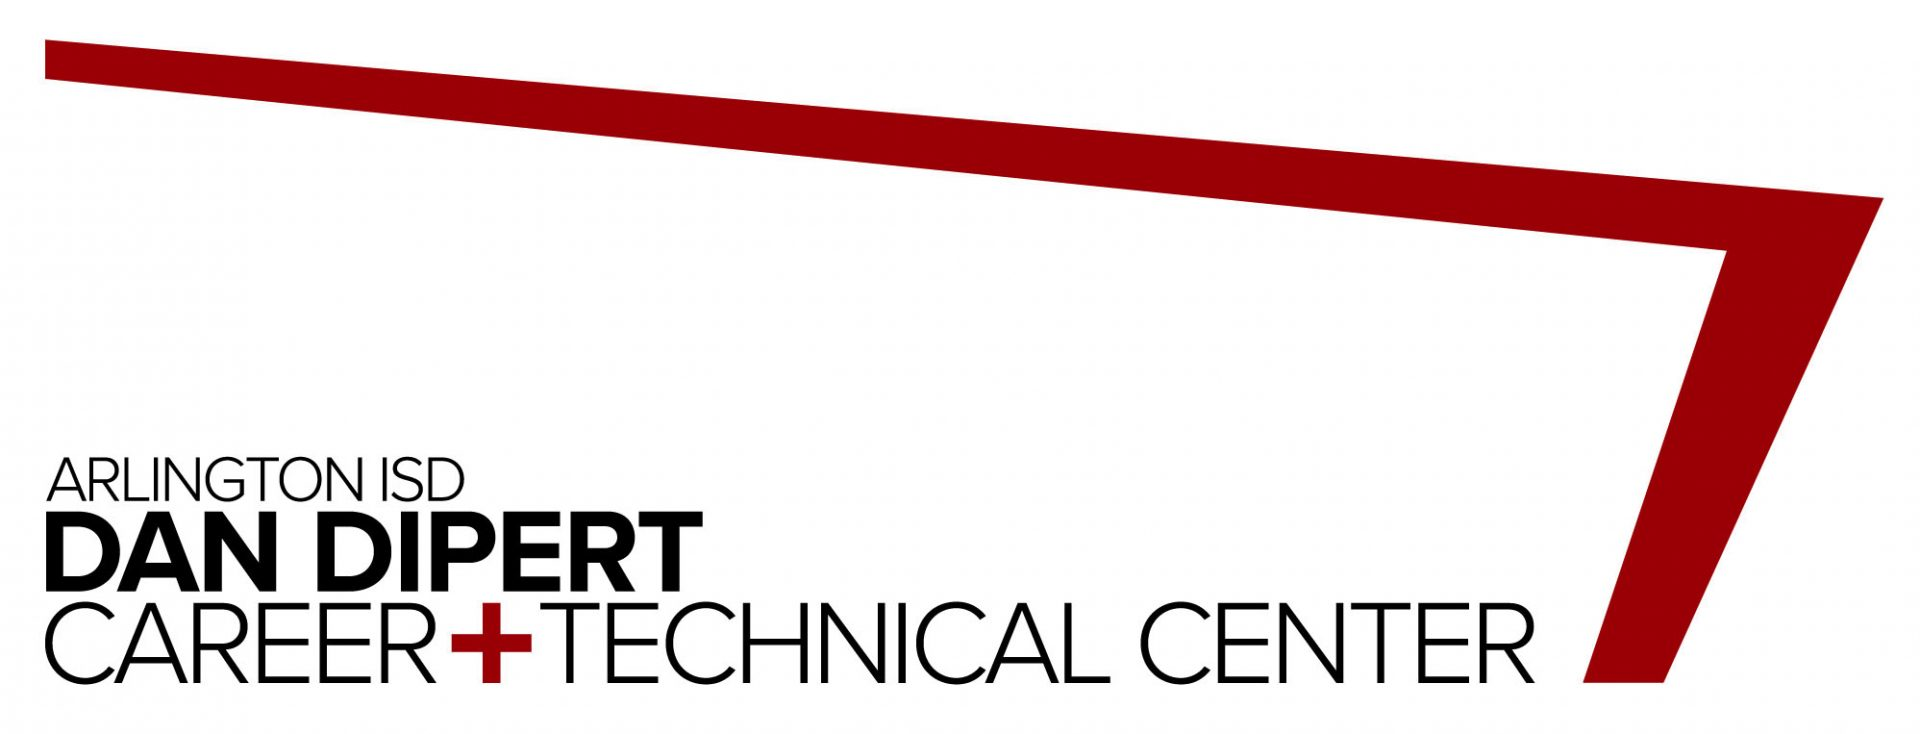 Arlington ISD Dan Dipert Career and Technical Center logo